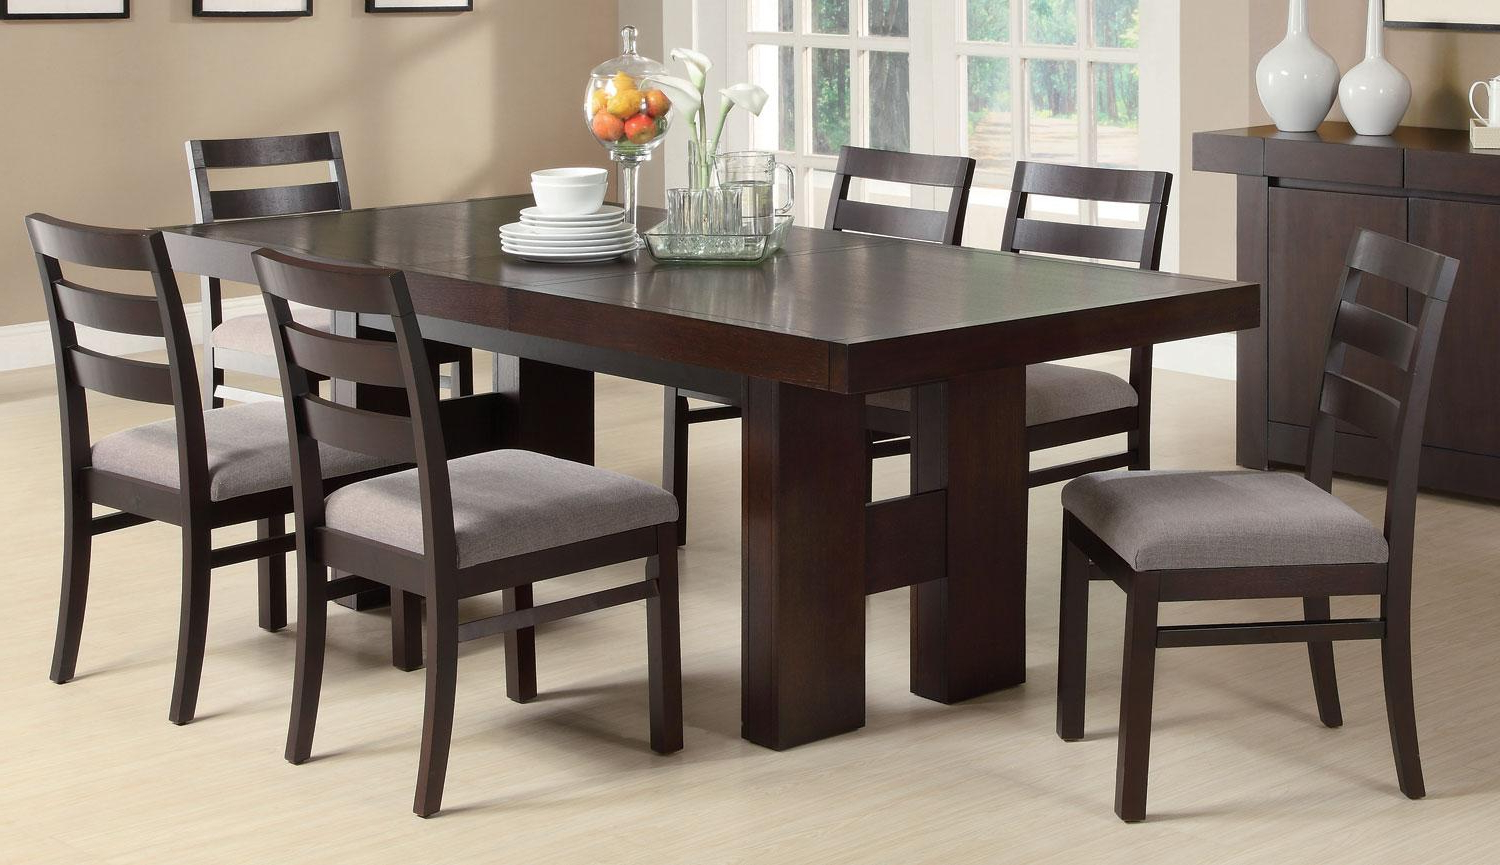 Newest Coaster Dabny Dining Table Regarding Transitional Rectangular Dining Tables (View 10 of 21)